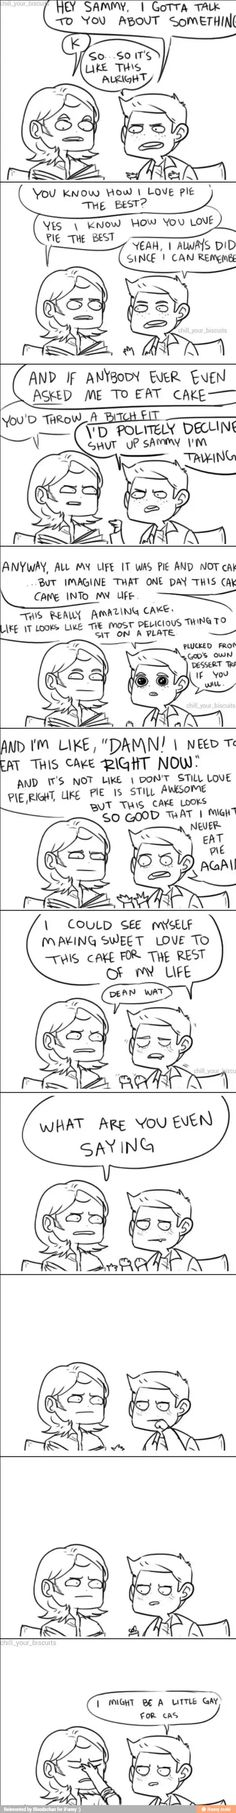 Destiel.  Yep, he's talkin' Angel Food cake...with a side of trenchcoat || Sam Is 100% done with Dean